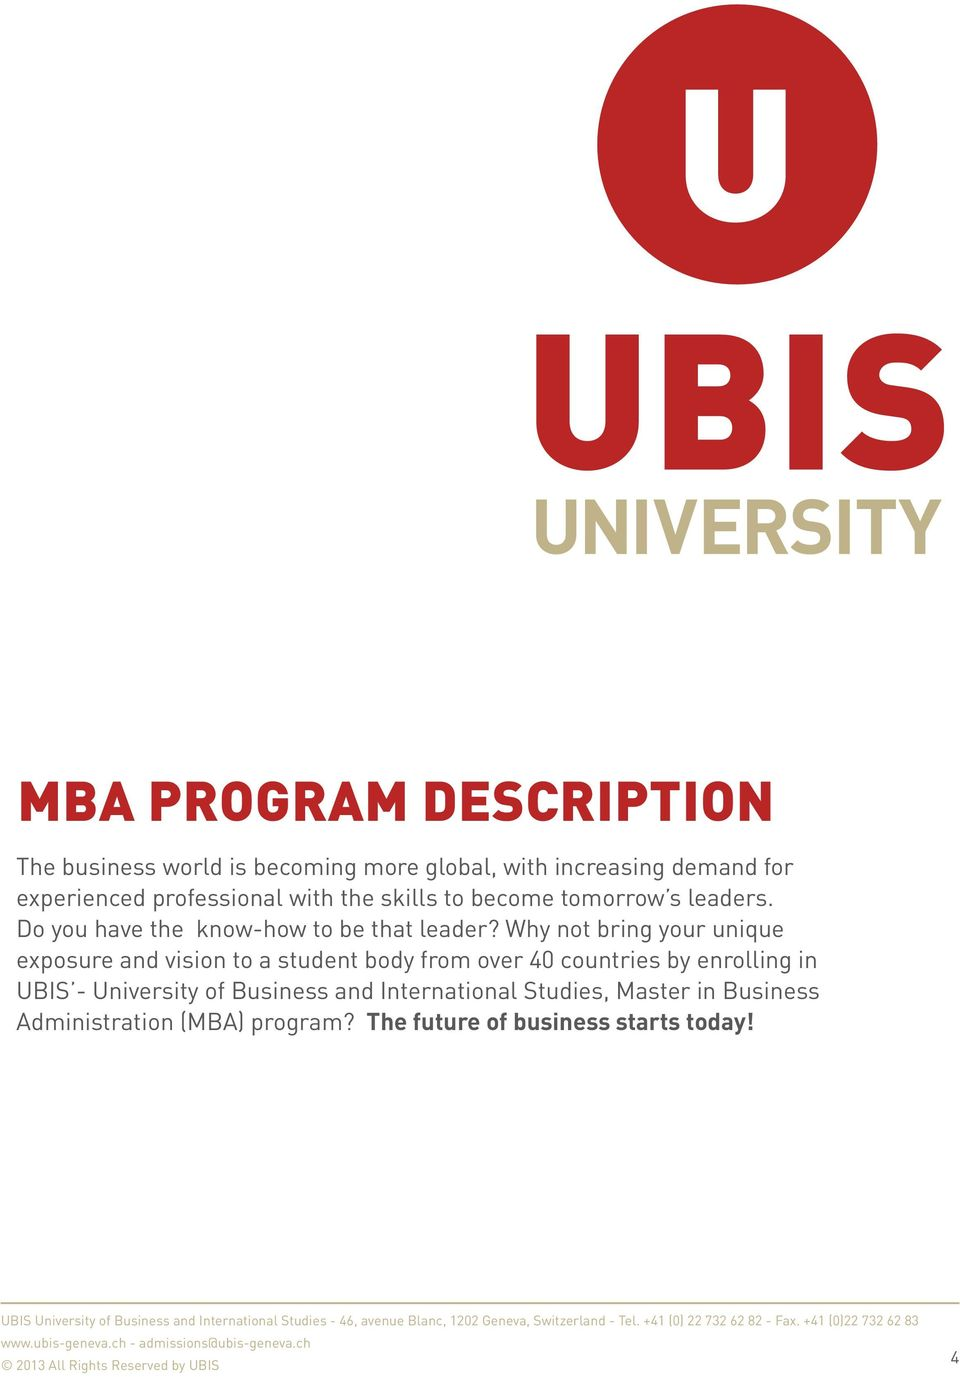 Why not bring your unique exposure and vision to a student body from over 40 countries by enrolling in UBIS -